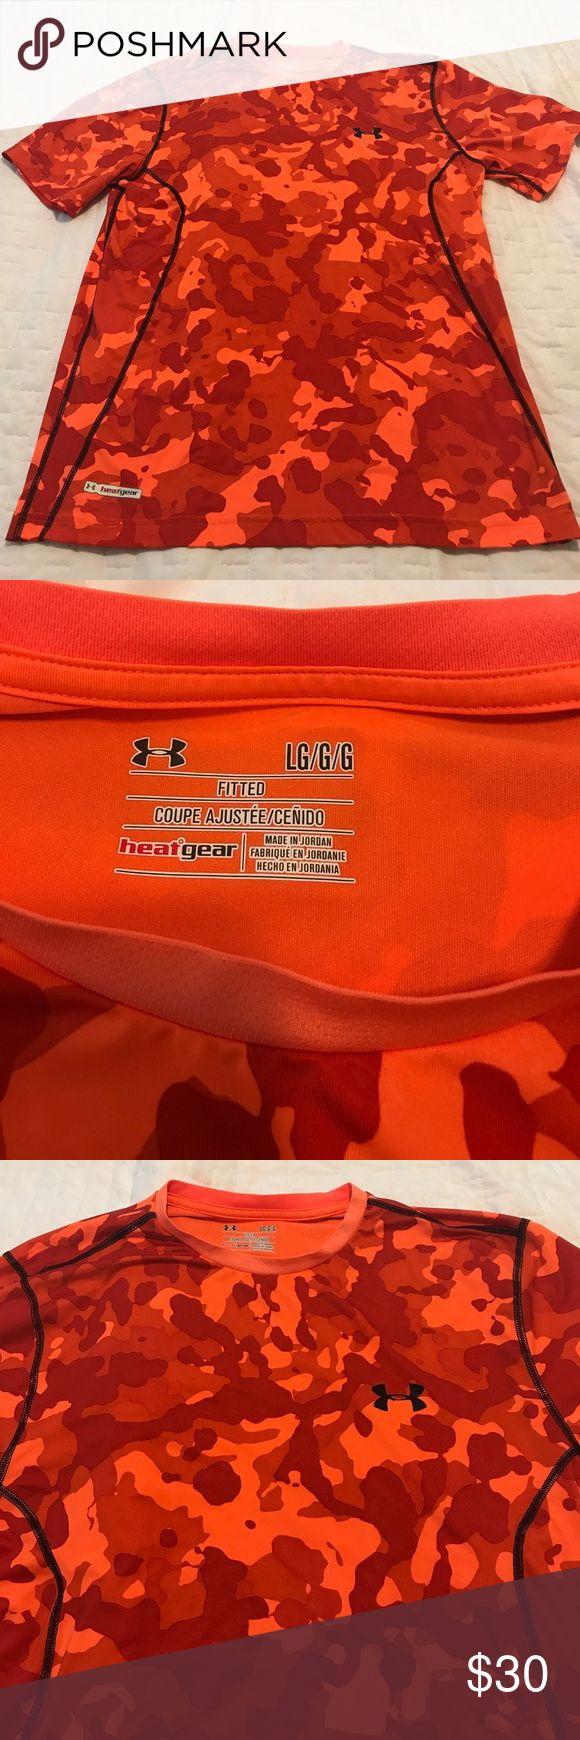 Under Armour Fitted HeatGear Shirt Size LG Fitted HeatGear Size Large Orange Camo Shirt.. Only worn a couple times. Excellent Condition Under Armour Shirts Tees - Short Sleeve